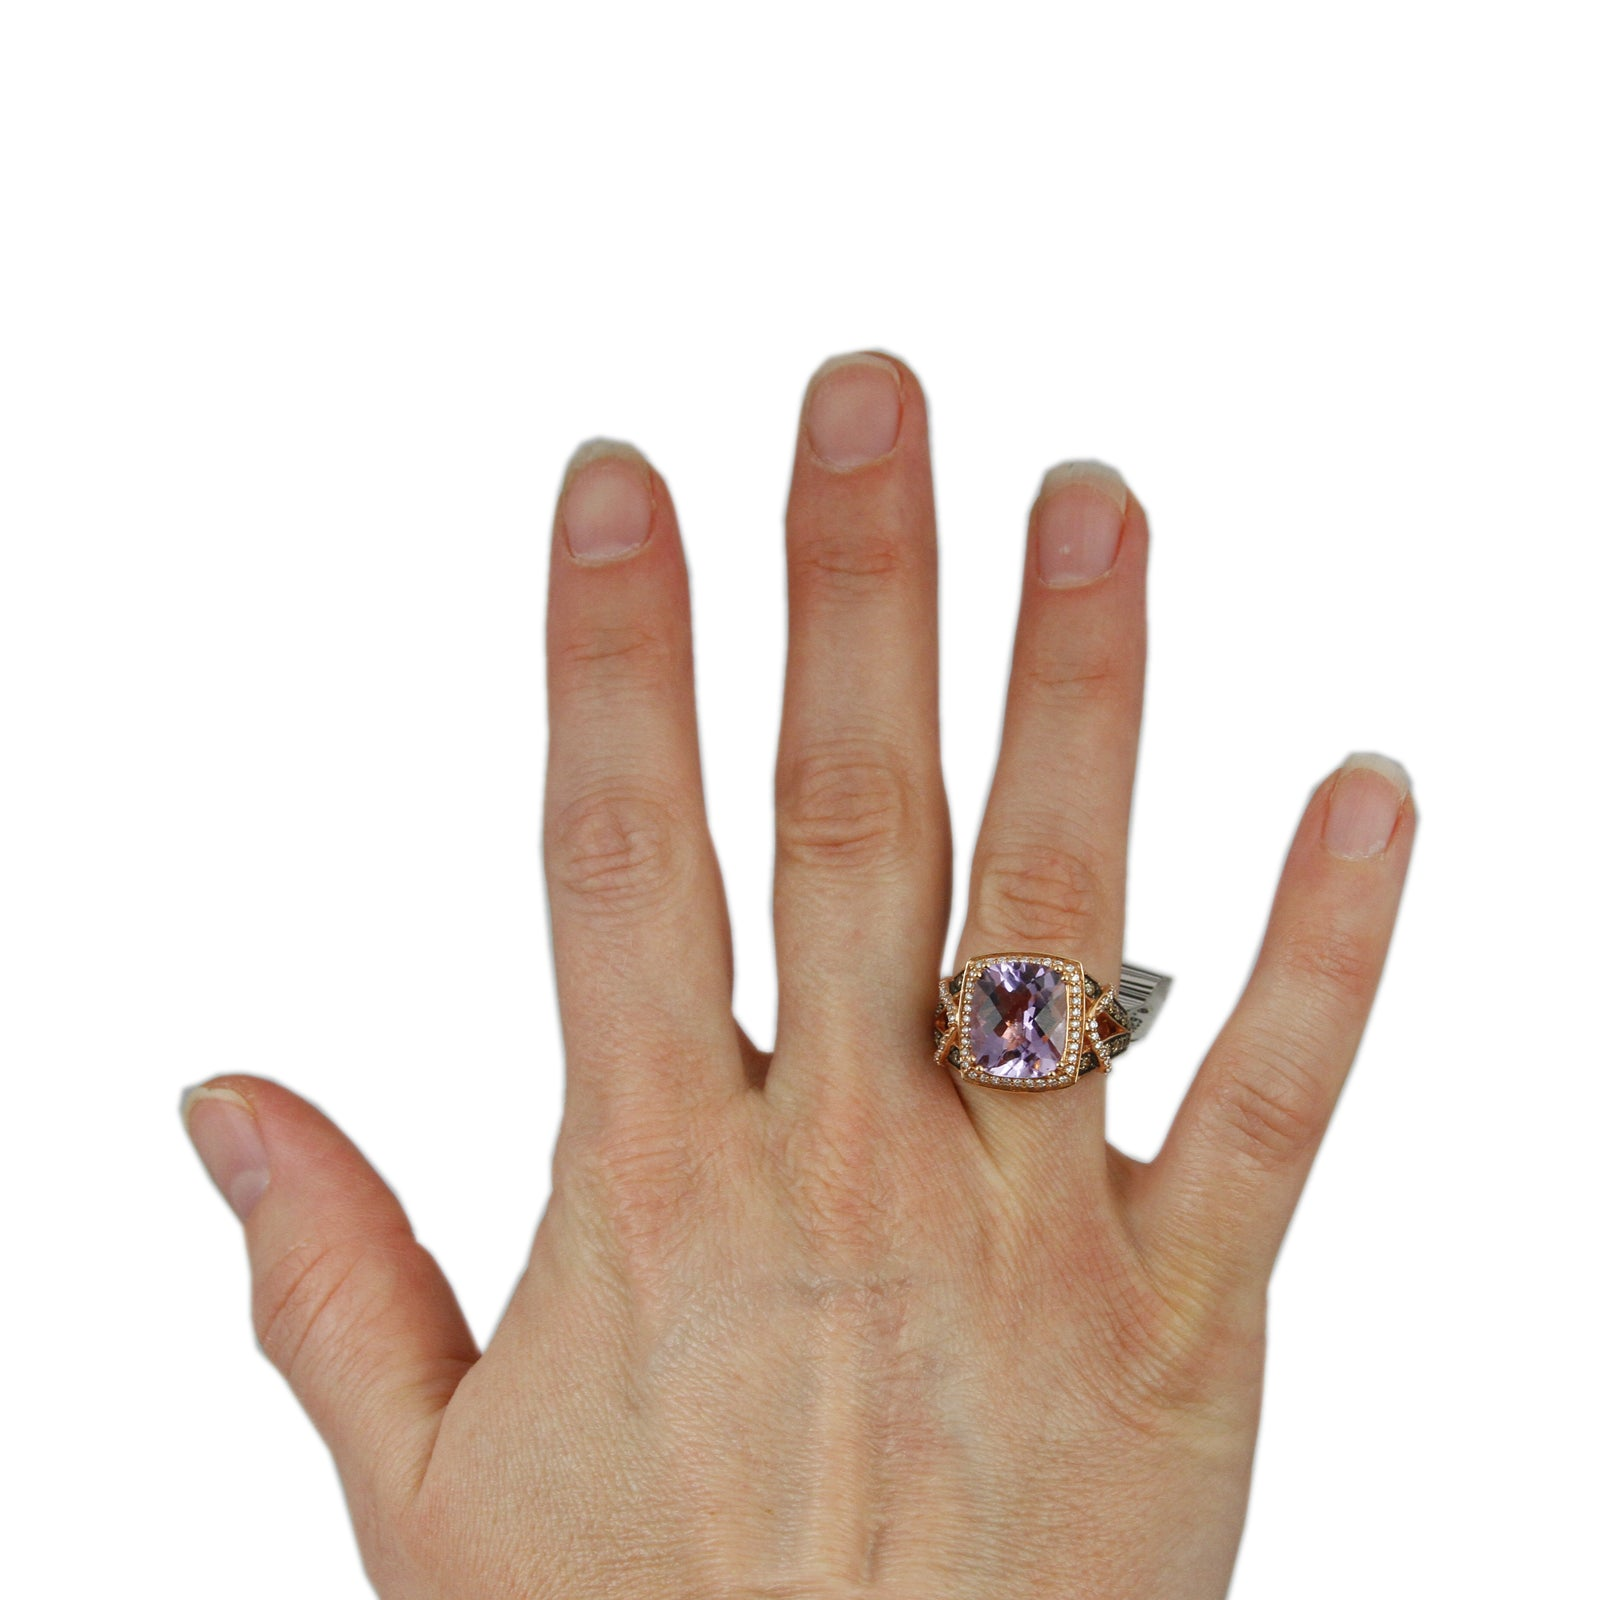 Designer Le Vian 4.40ct Cushion Cut Amethyst with White & Chocolate Diamond Accents-3